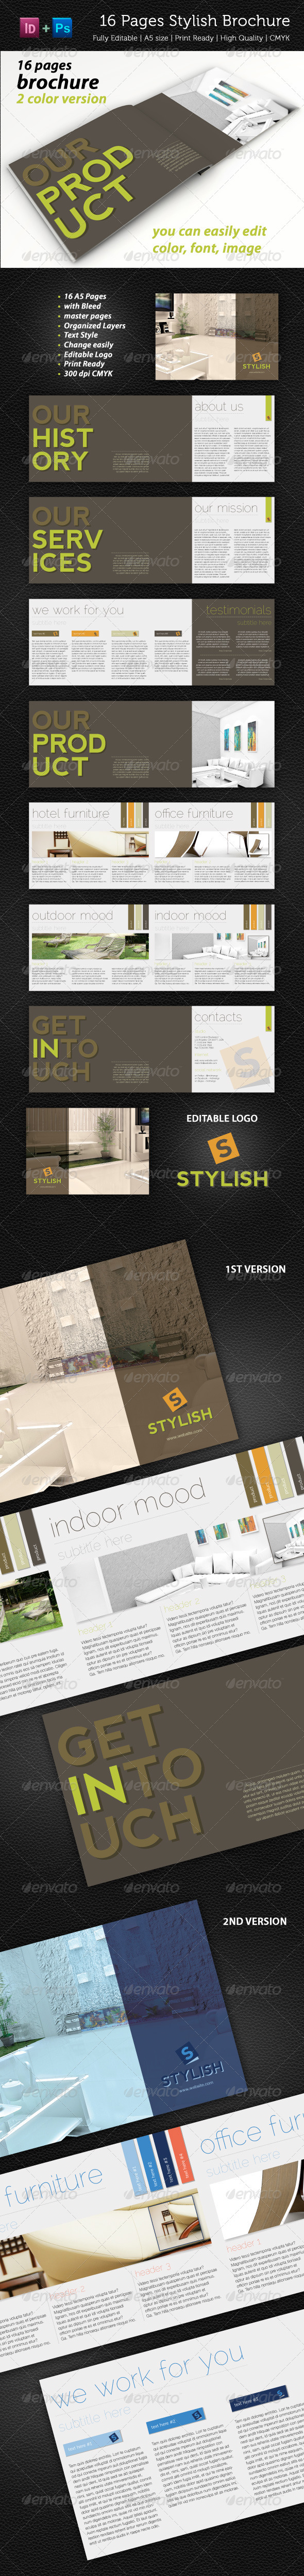 16 Pages Stylish Brochure - Corporate Brochures